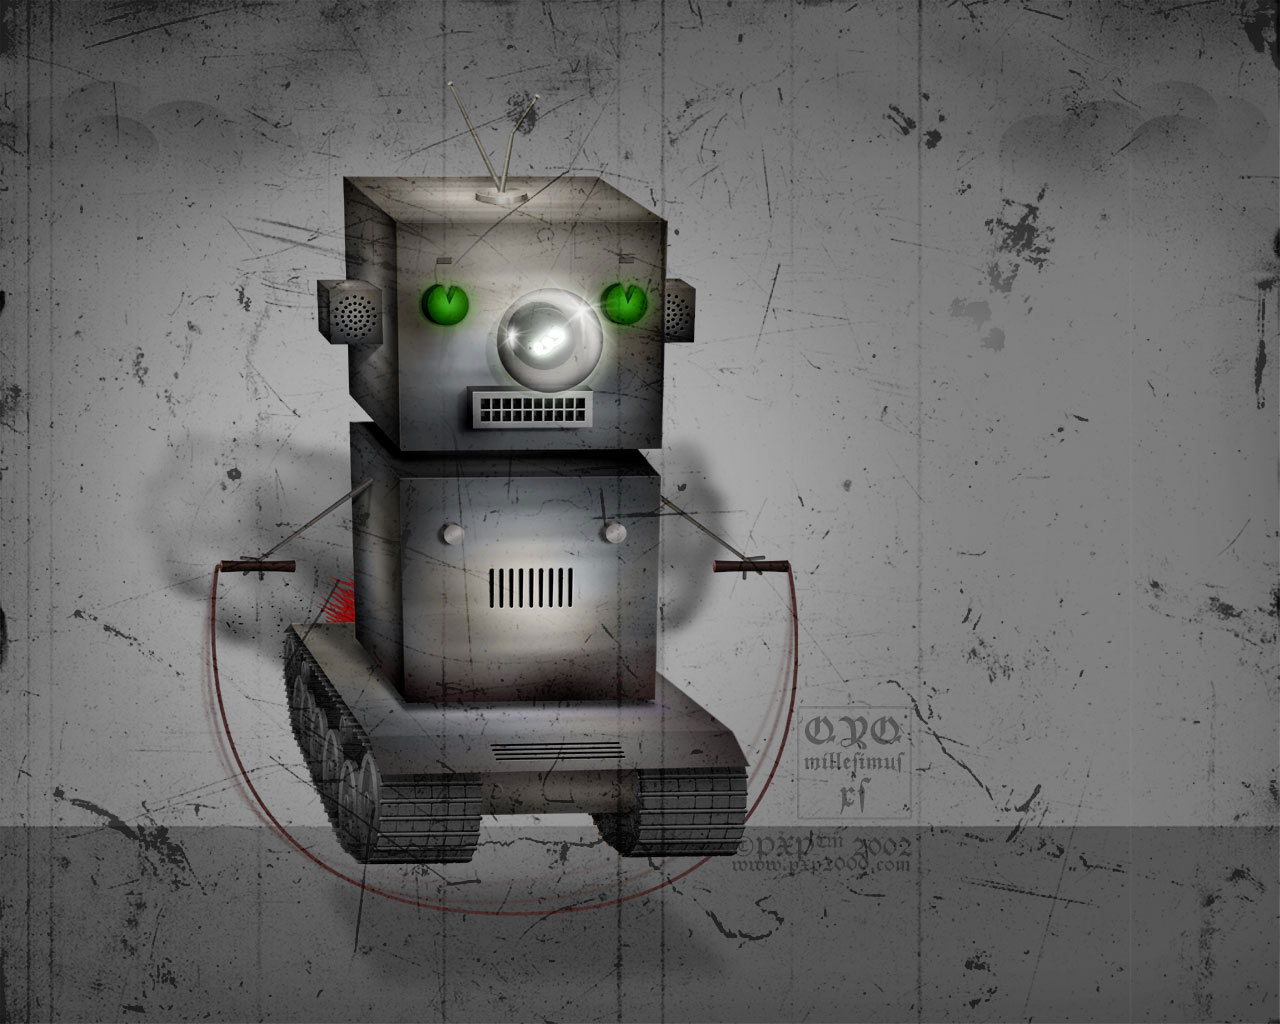 Robots images Robot wallpaper HD wallpaper and background photos